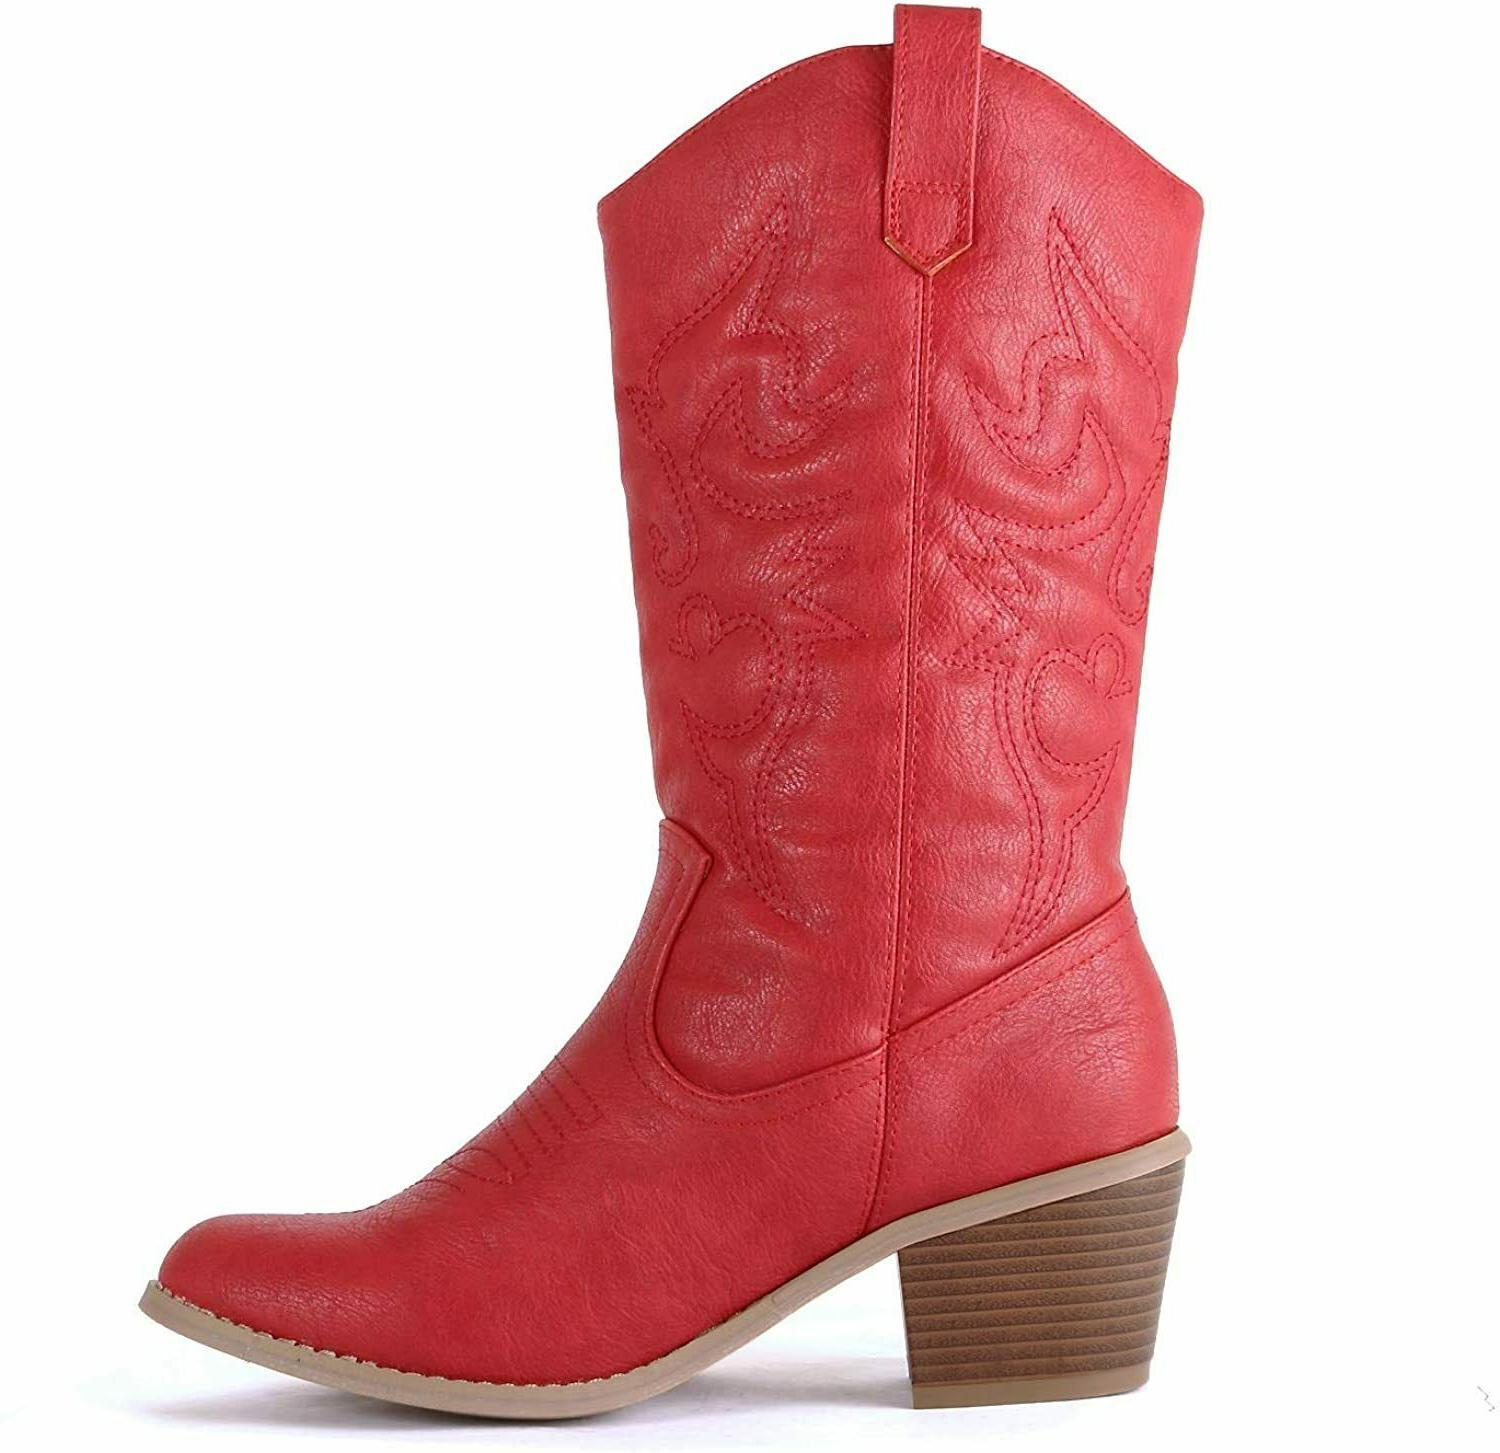 West Blvd Miami Western Boots, Red, 9